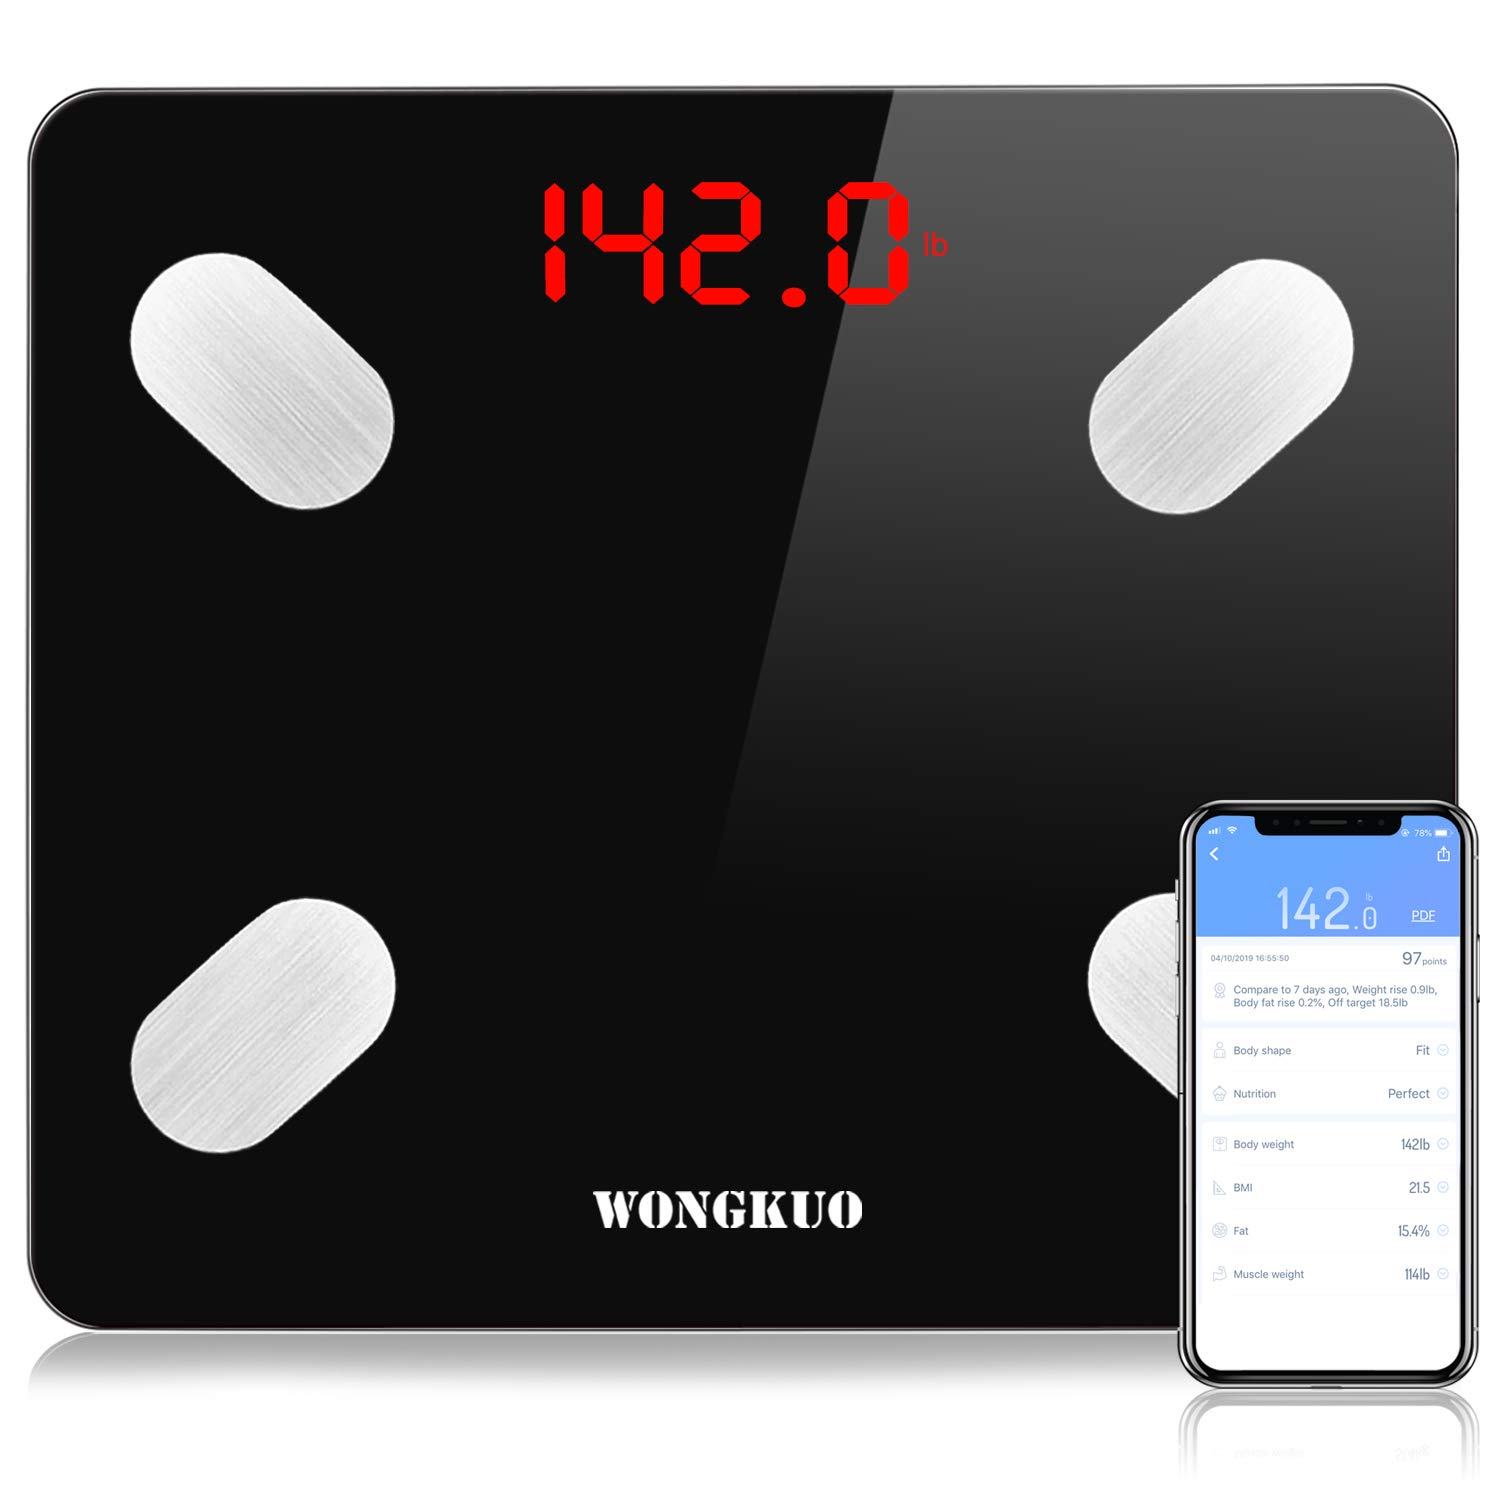 WONGKUO Bluetooth Smart Body Fat Scale,24 Key Body Composition Monitor Wireless Digital Bathroom Weight Scales Analyzer with Free iOS and Android APP,Sync Data with Apple Health,Google Fit or Fitbit by WONGKUO